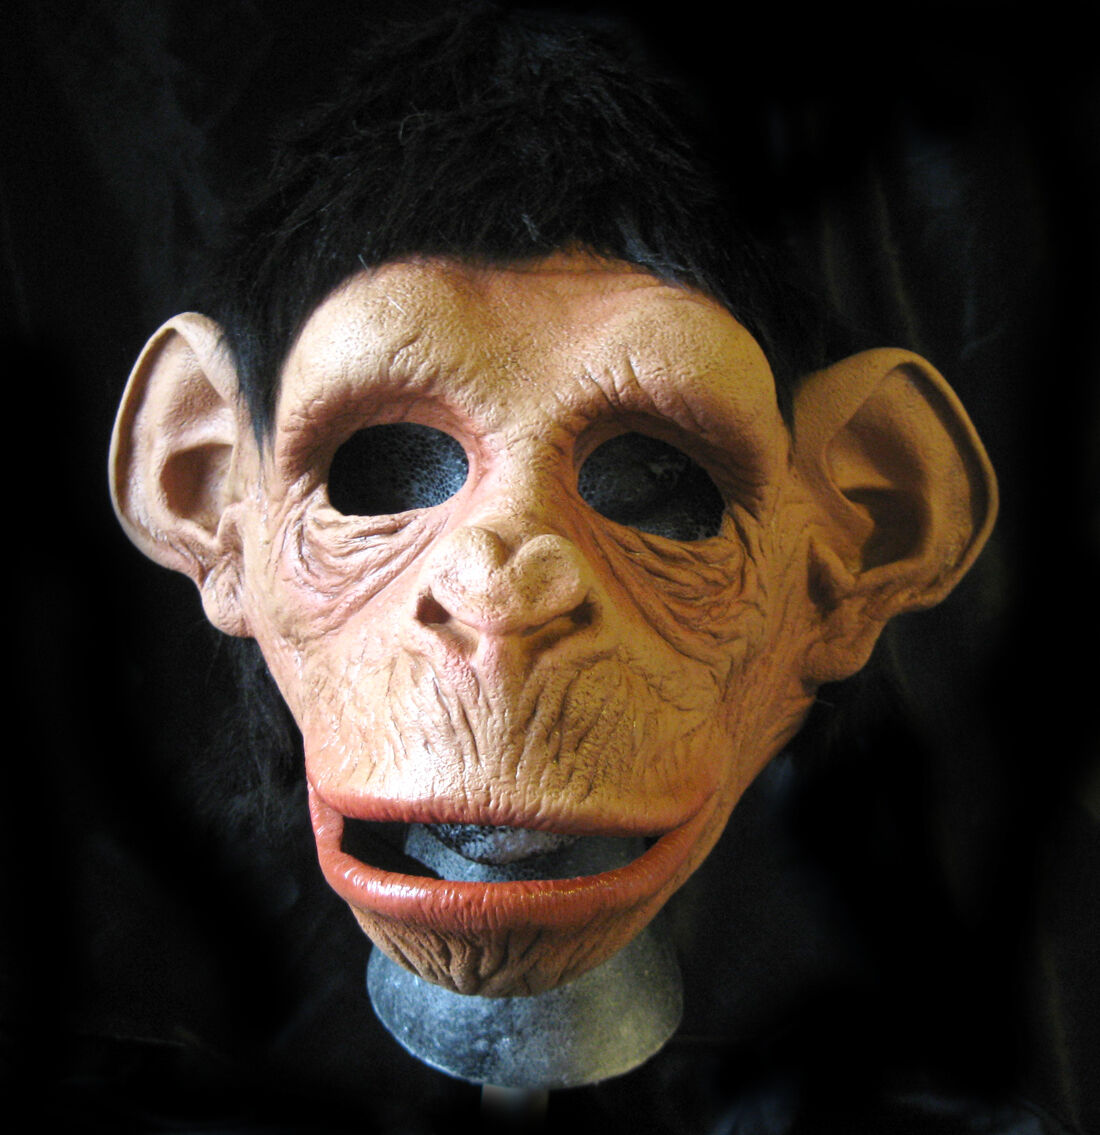 Showing Media & Posts for Funny monkey mask | www.picofunny.com